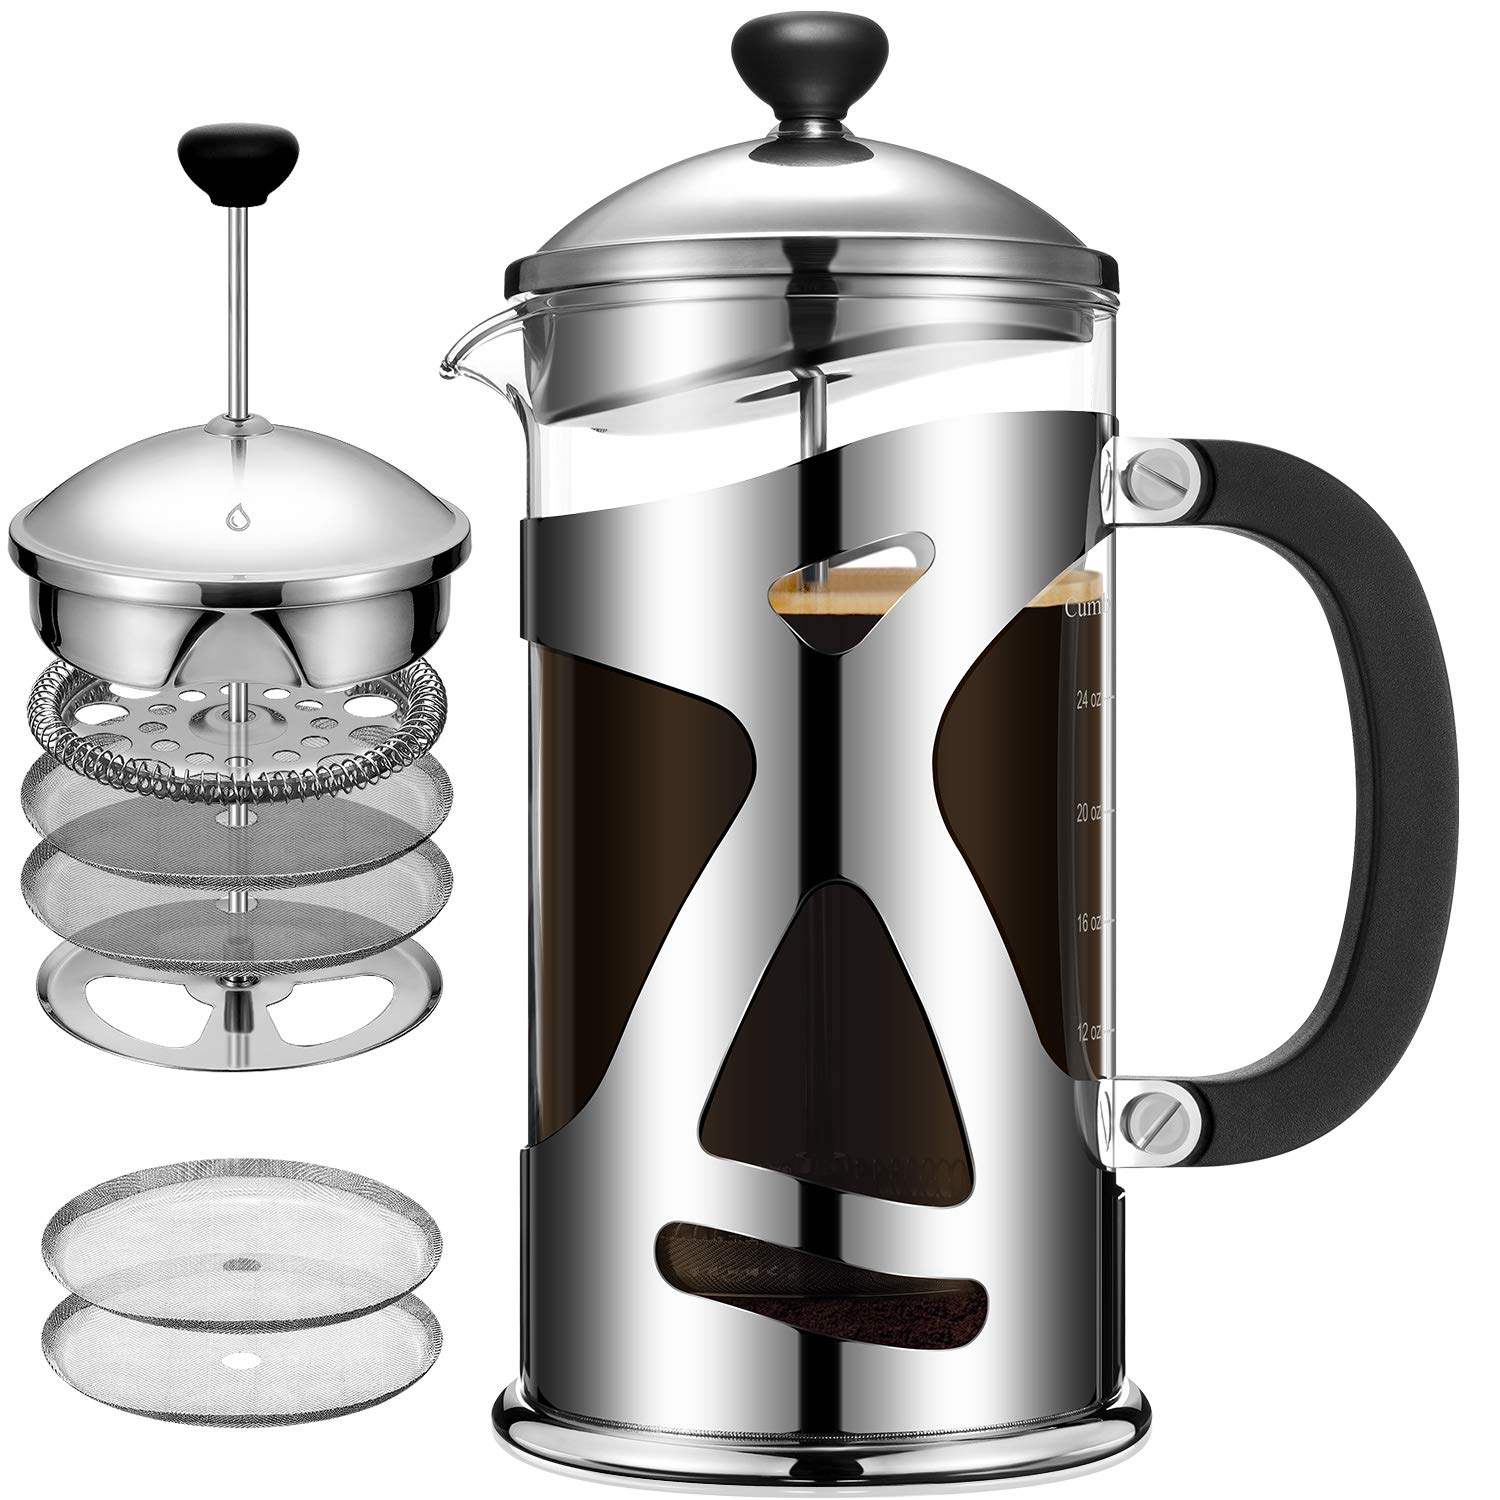 Cumbor French Press Coffee Maker(34oz), Durable Stainless Steel Coffee Press with 4 Filter Screens, Easy Clean, Heat Resistant Borosilicate Thicker Glass - 100% BPA Free by Cumbor